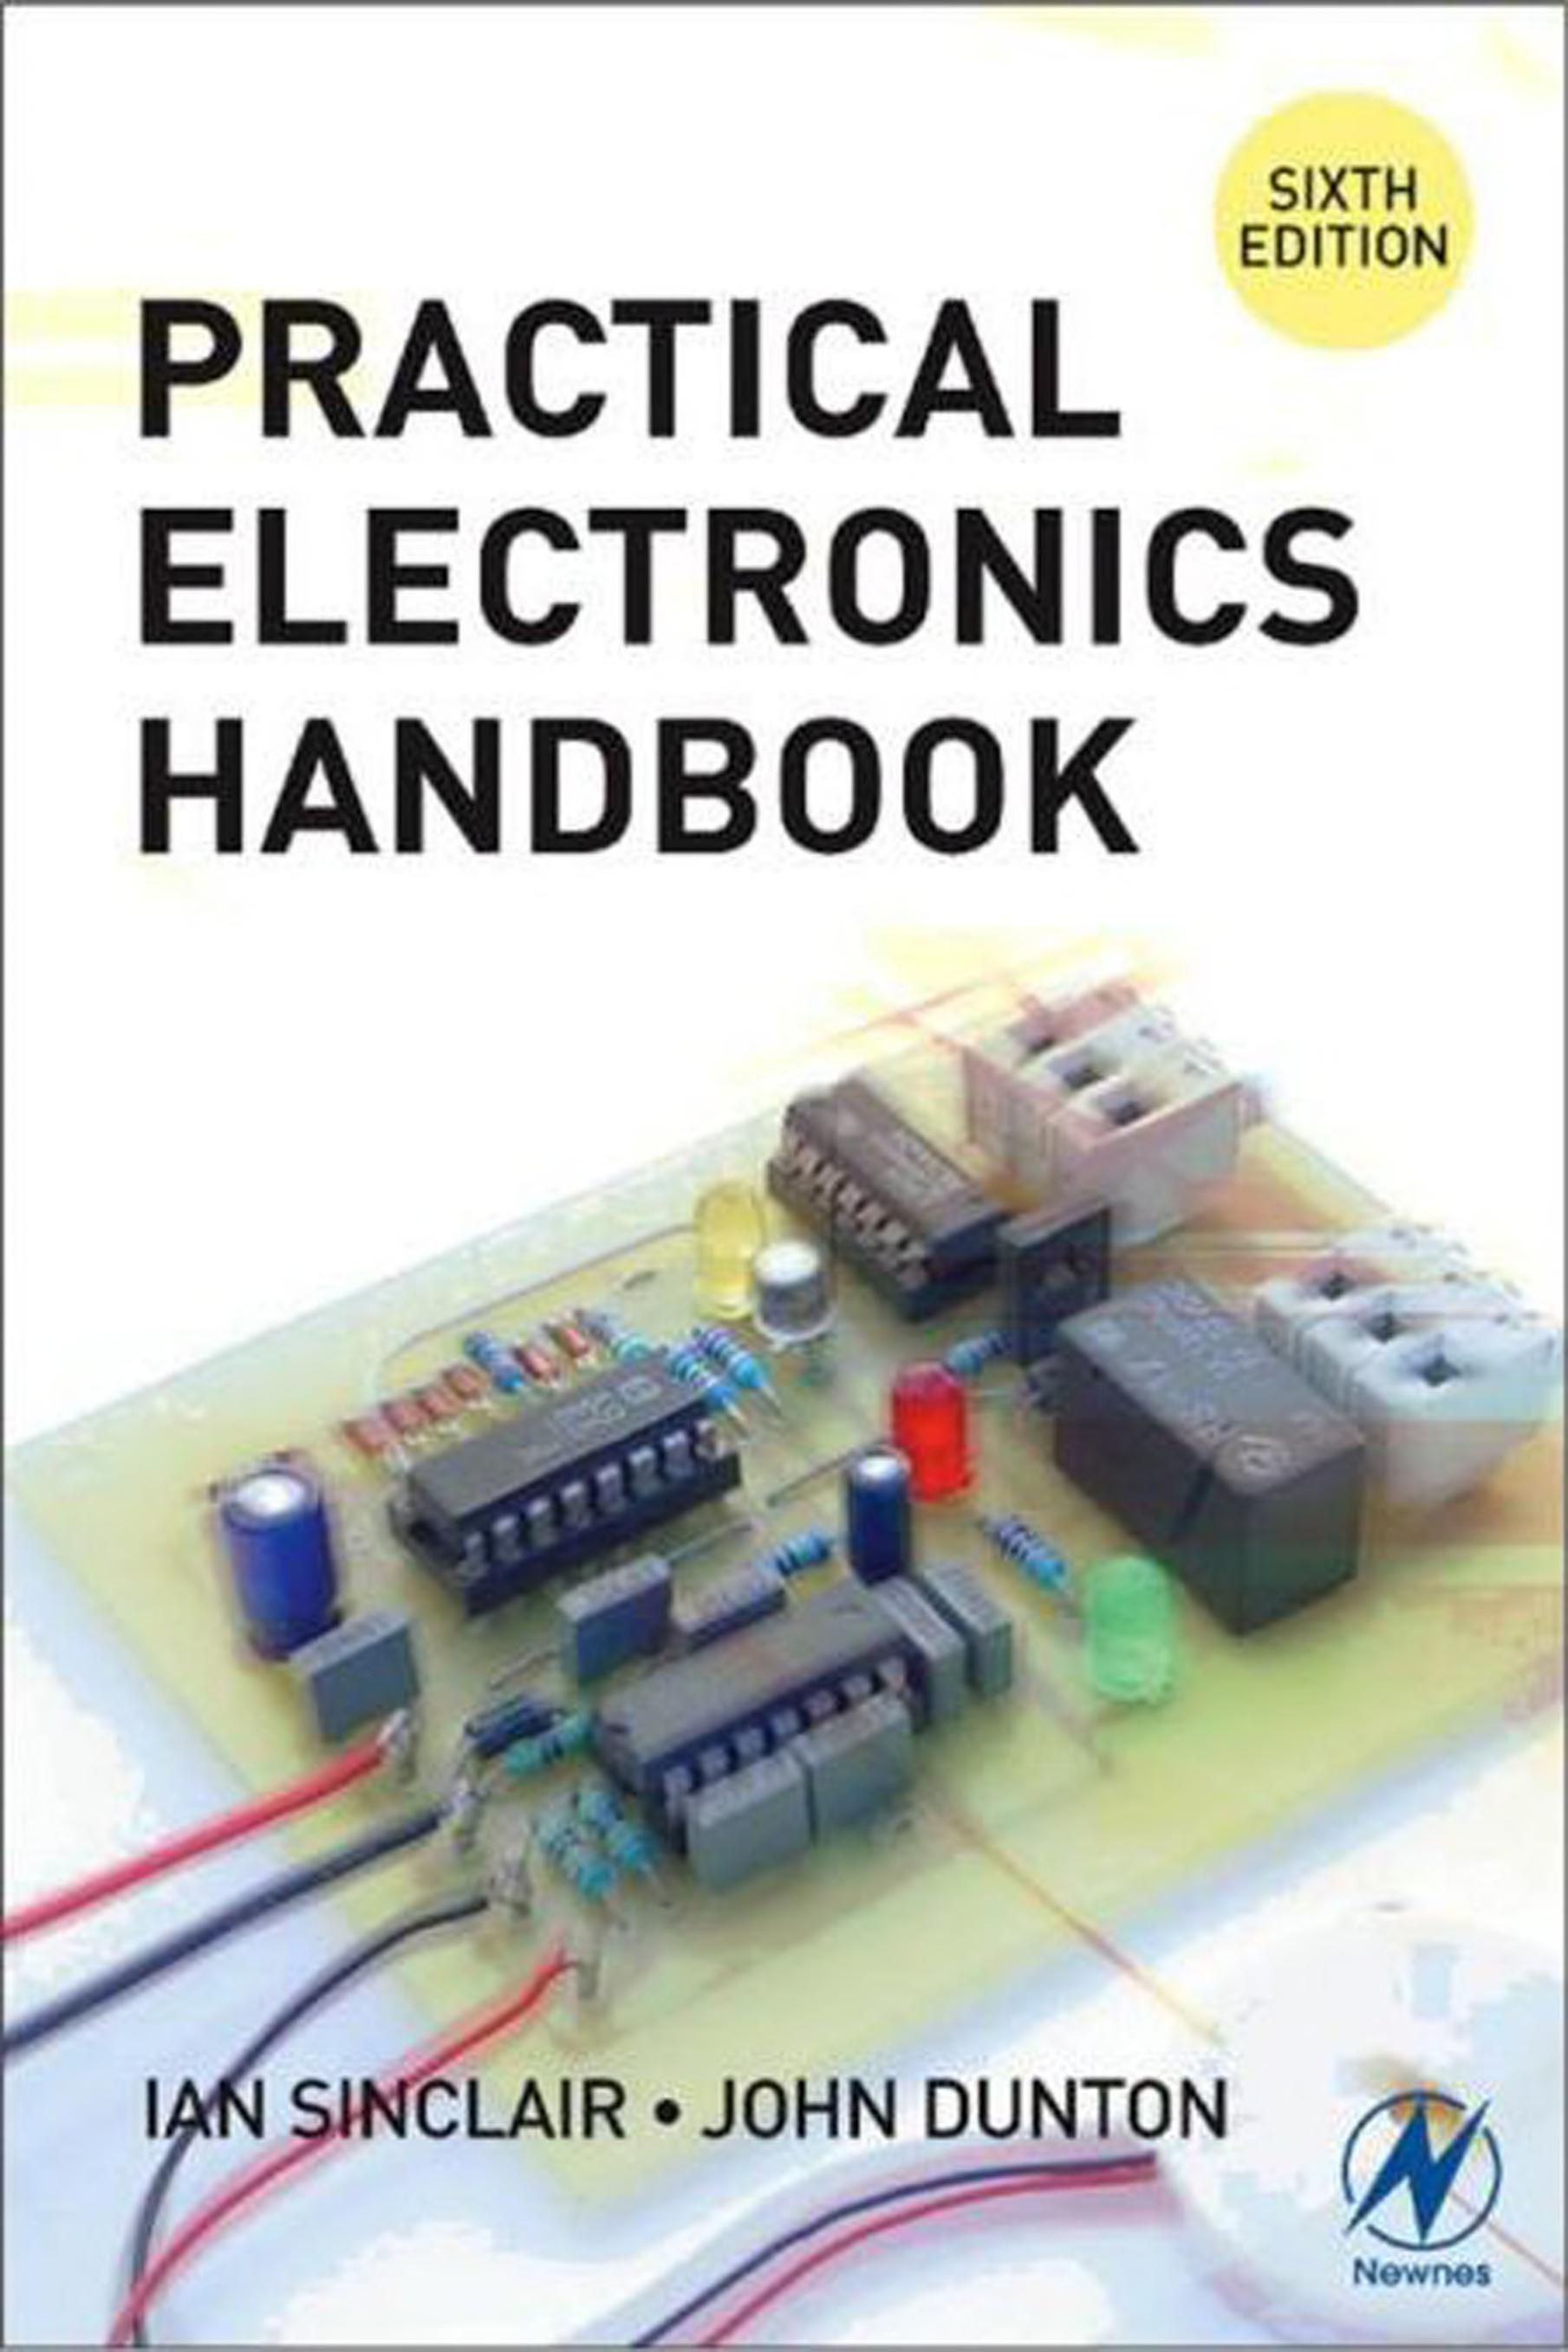 Electronics Practical Electronics Handbook 6 Edition Free Download Borrow And Streaming Internet Archive Electronic Circuit Projects Basic Electronic Circuits Electronic Circuit Design